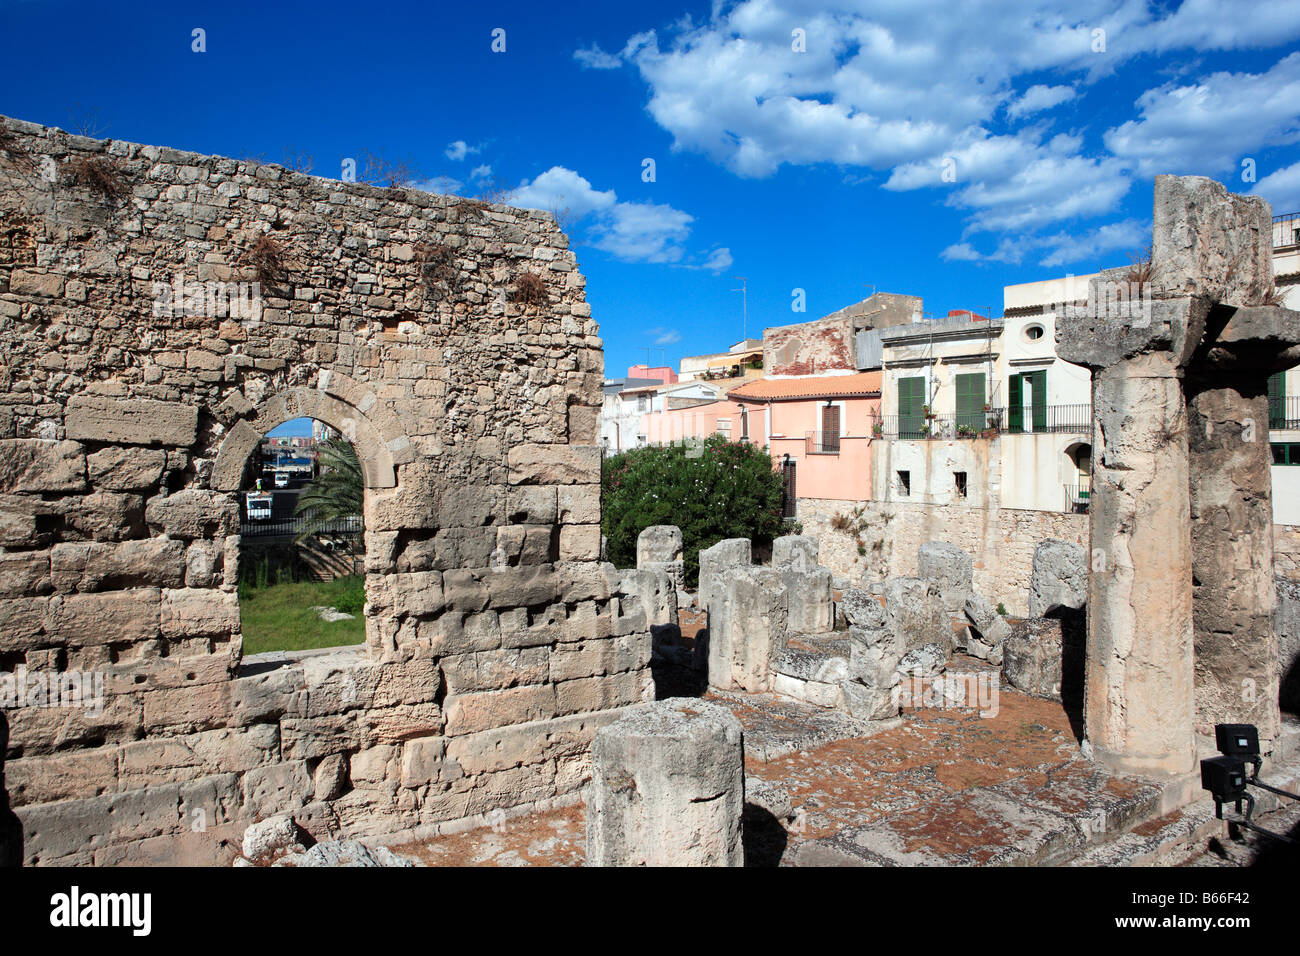 Temple of Apollo, Ortygia, Syracuse, Sicily - Stock Image